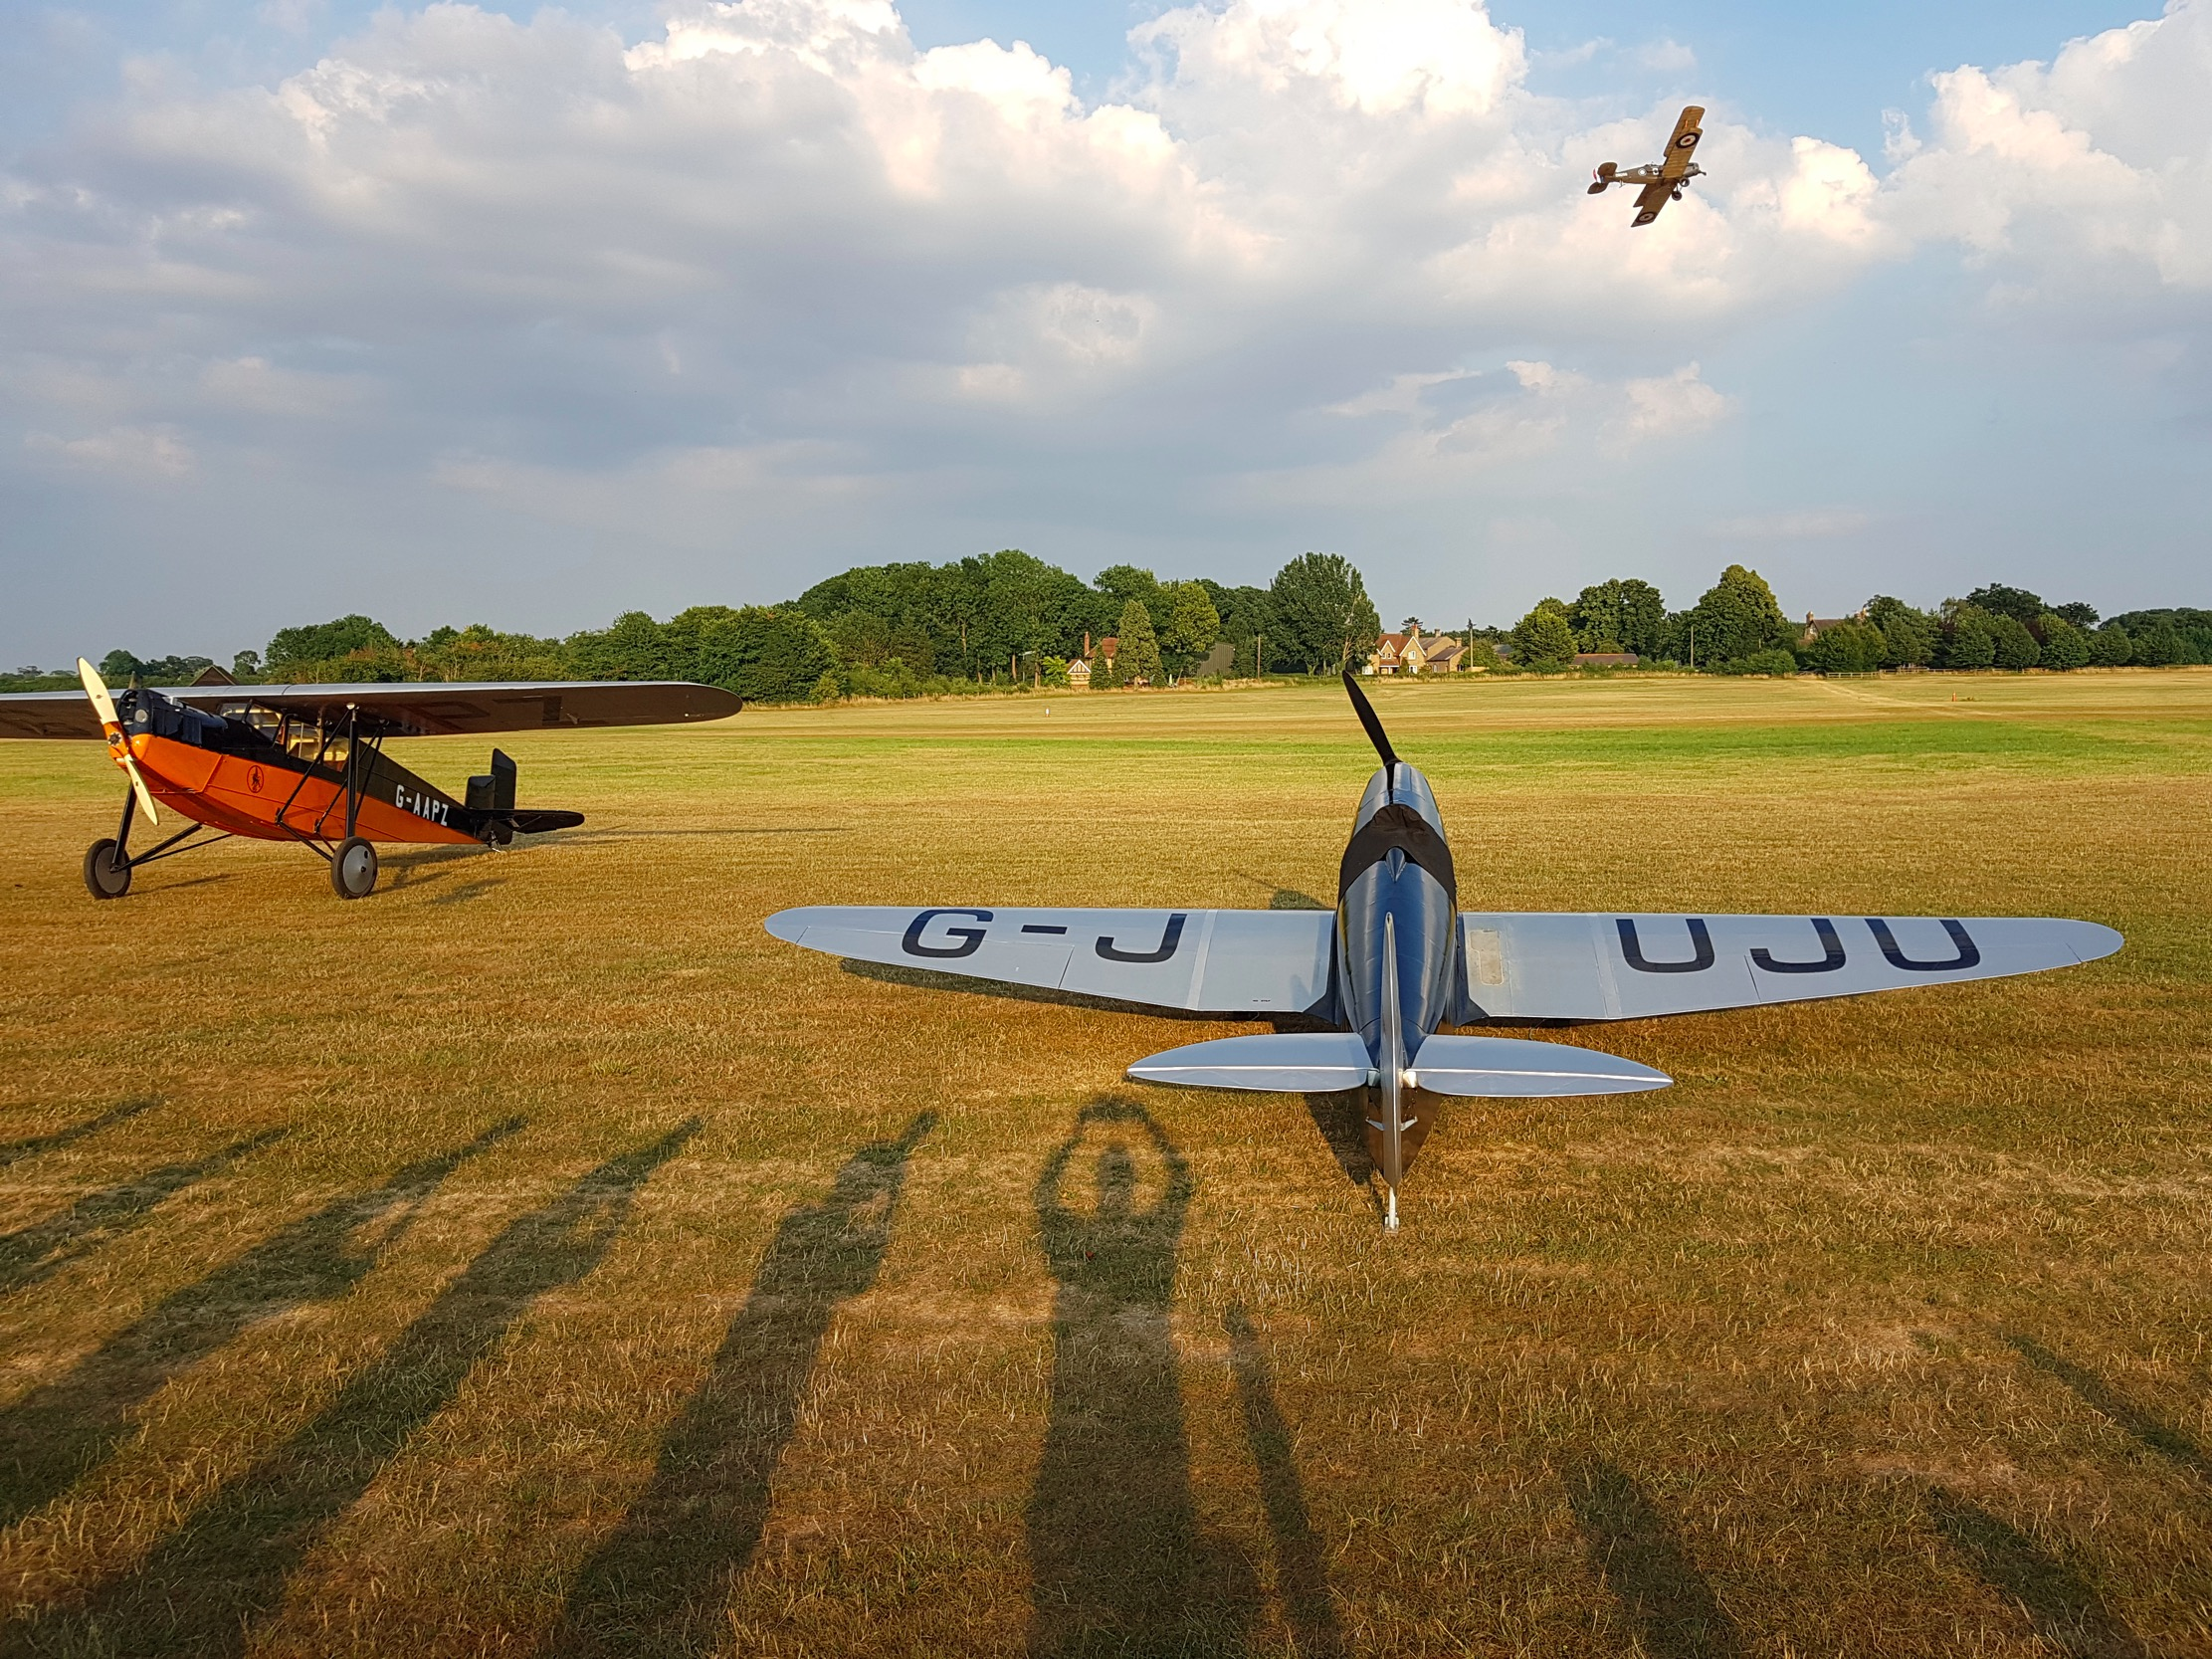 Un 14 juillet sur le terrain de Old Warden,  The Shuttleworth Collection